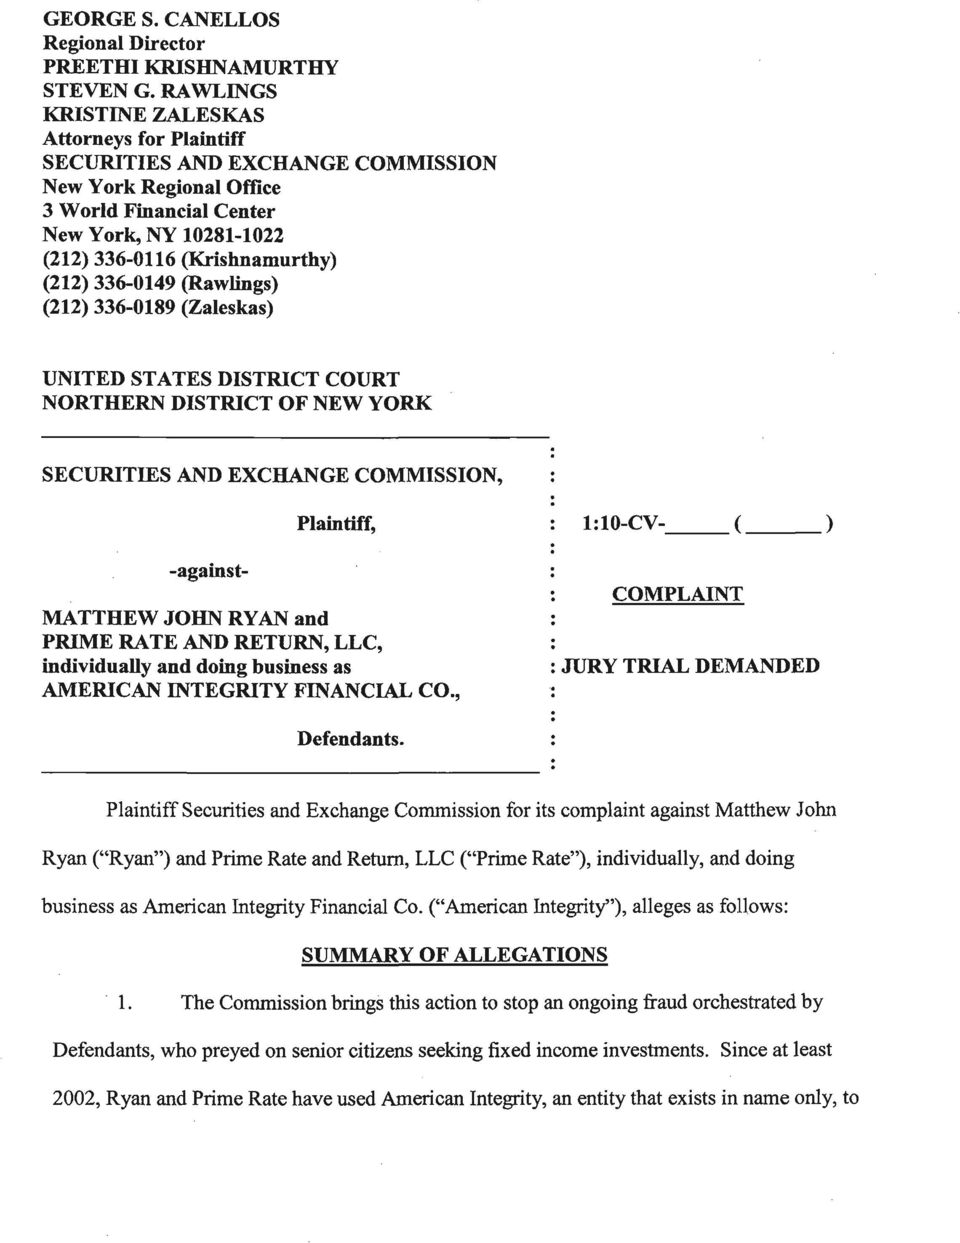 336-0149 (Rawlings) (212) 336-0189 (Zaleskas) UNITED STATES DISTRICT COURT NORTHERN DISTRICT OF NEW YORK SECURITIES AND EXCHANGE COMMISSION, Plaintiff, 1:10-CV ( ) -against- COMPLAINT MATTHEW JOHN